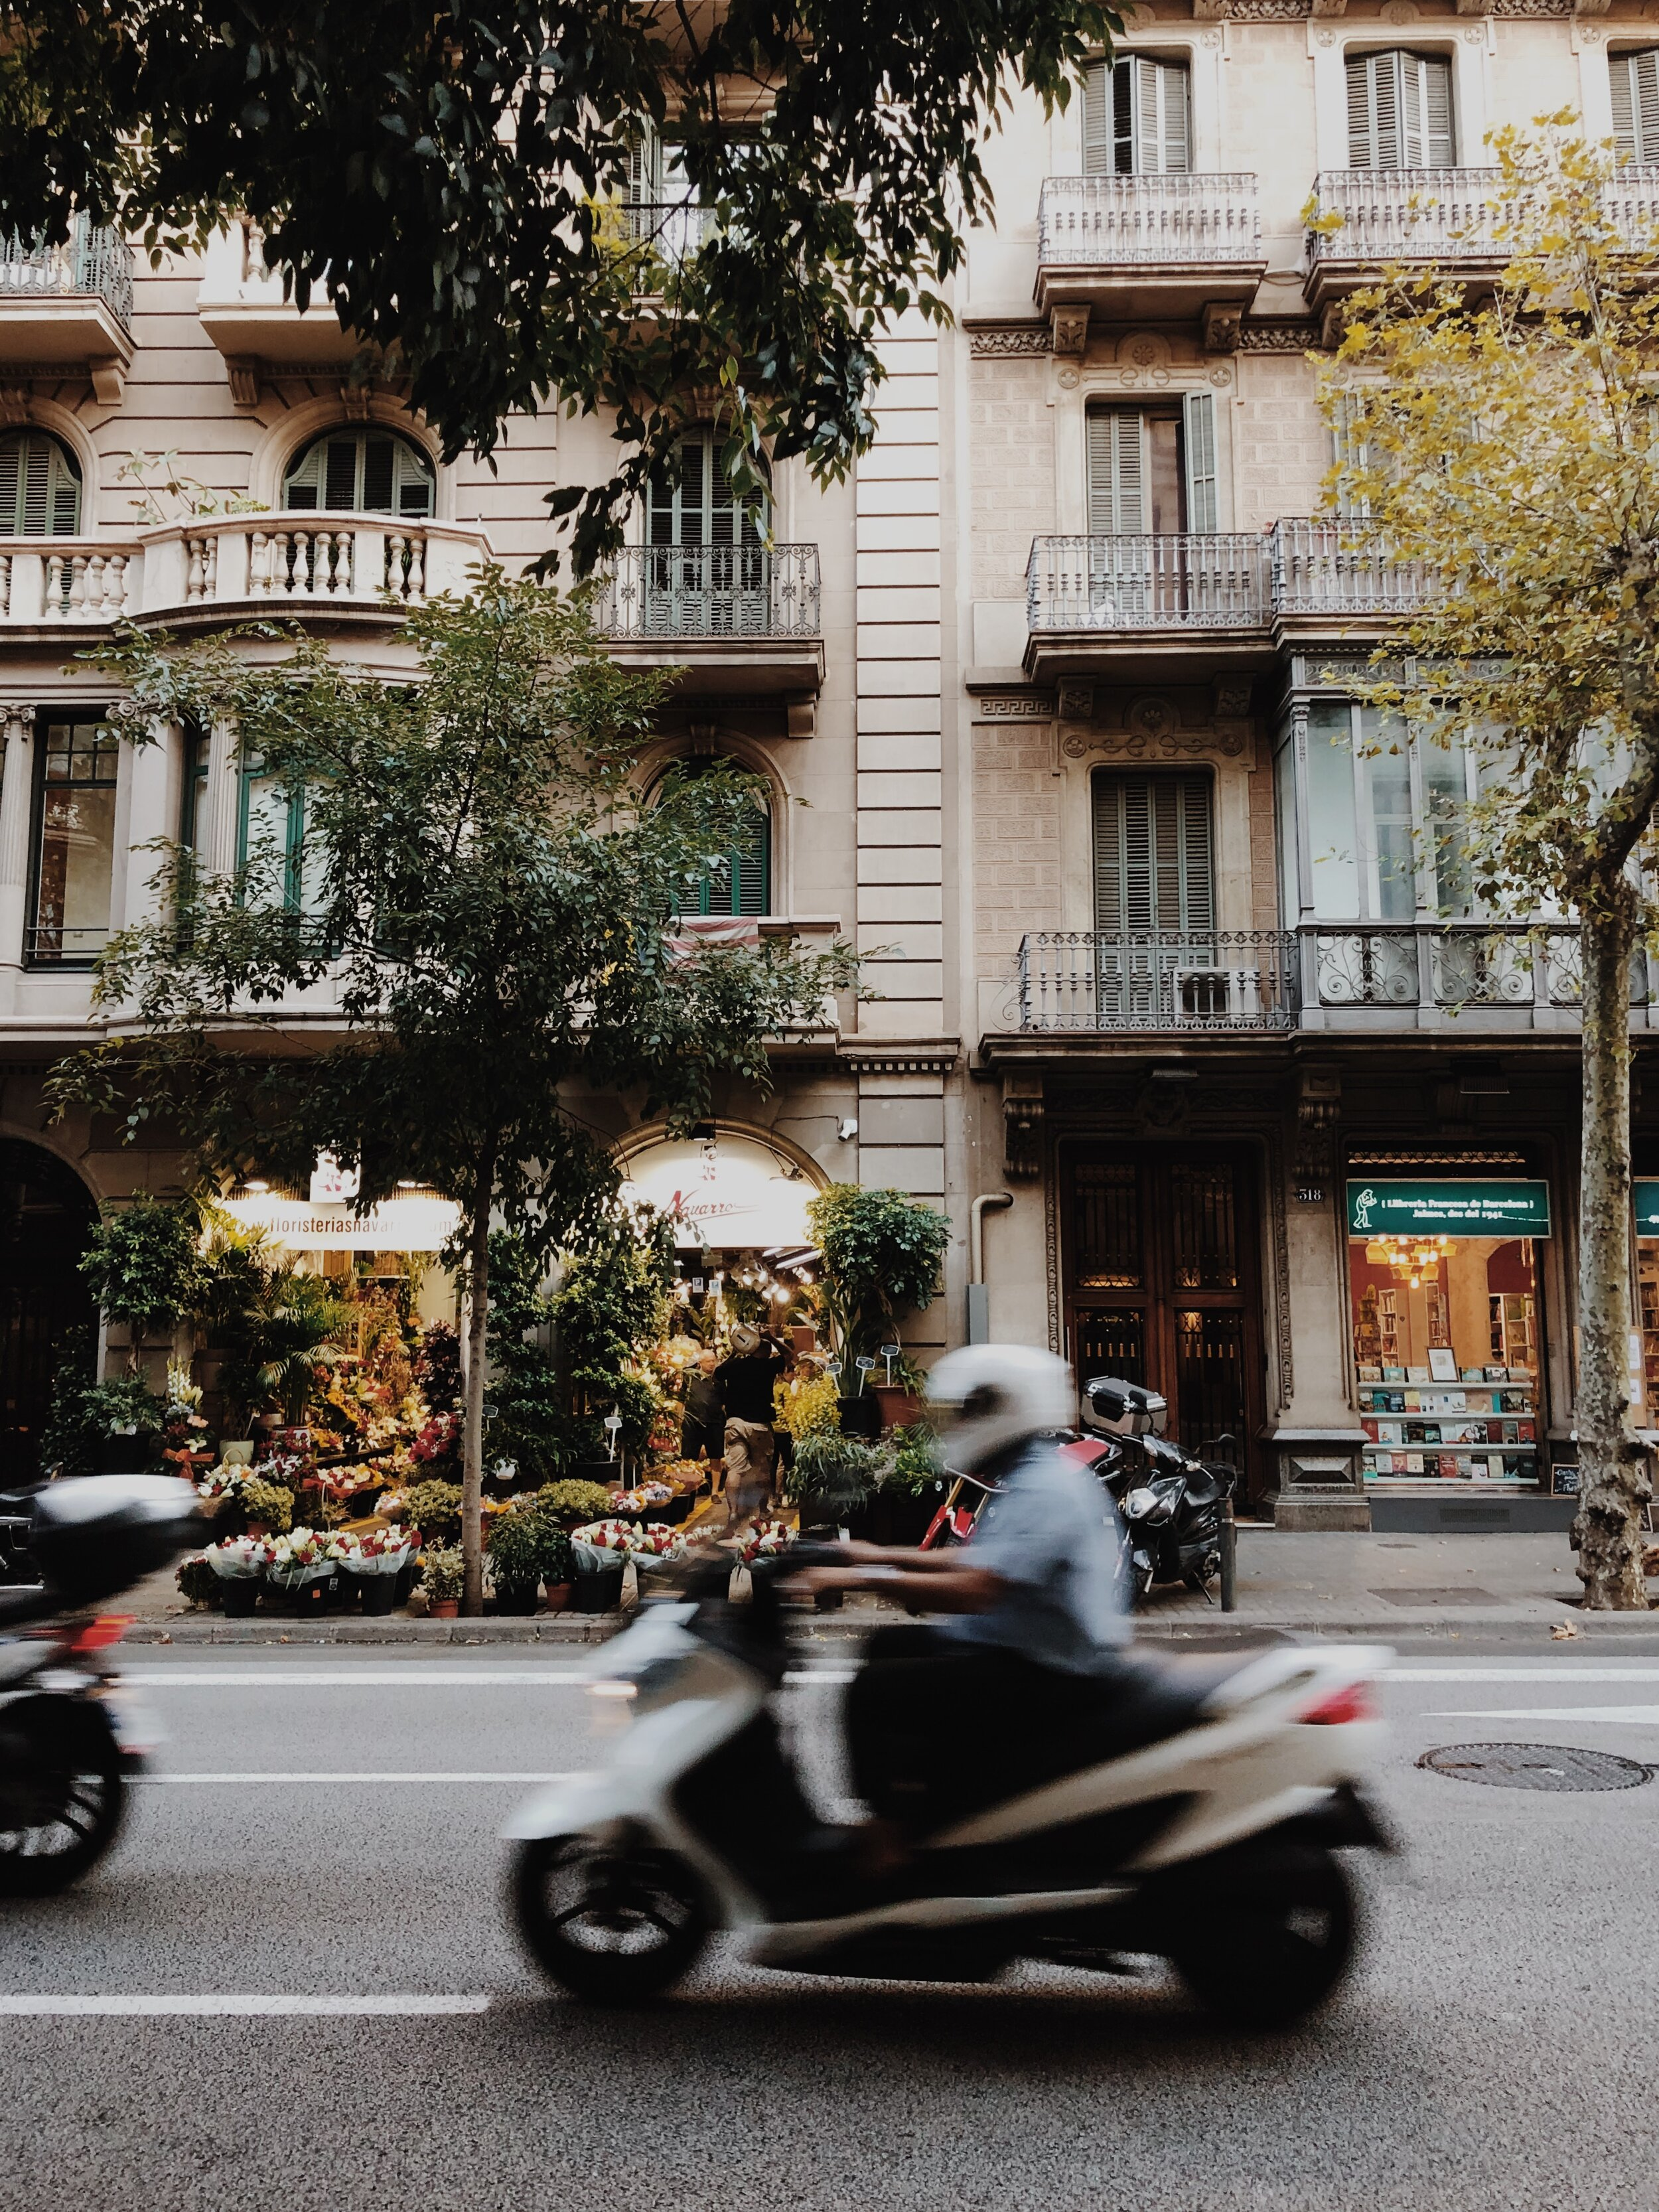 If I lived in Barcelona, I would 100% get a scooter.